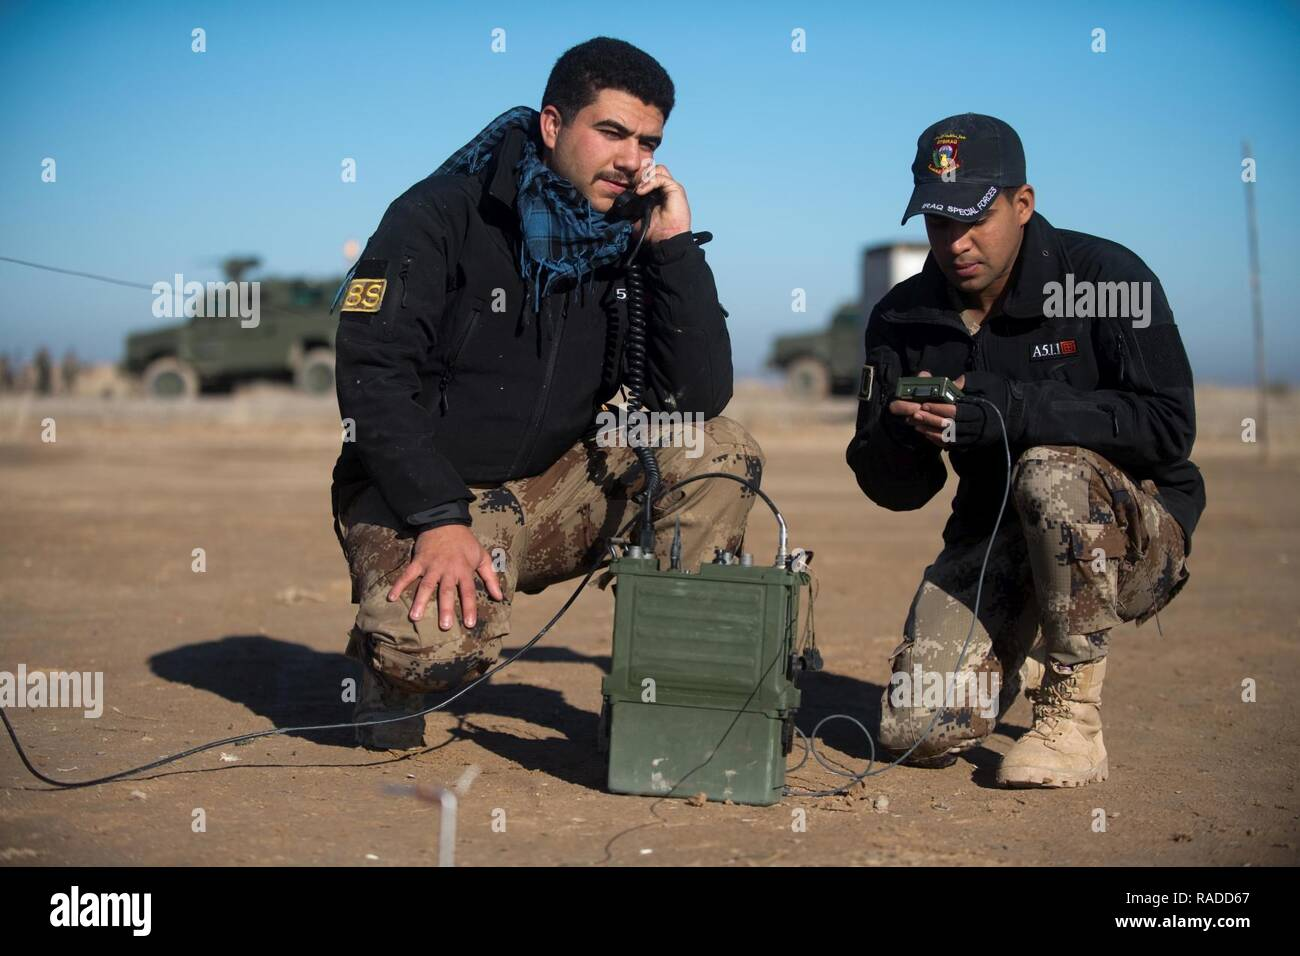 Iraqi Counter-Terrorism Service trainees conduct high frequency communications training near Baghdad, Iraq, Jan. 30, 2017. ICTS is Iraq's elite counter-terrorism force and has proven to be an effective fighting force against ISIL. This training is part of the overall Combined Joint Task Force – Operation Inherent Resolve building partner capacity mission to increase the capabilities of partnered forces fighting ISIL. CJTF-OIR is the global Coalition to defeat ISIL in Iraq and Syria. - Stock Image